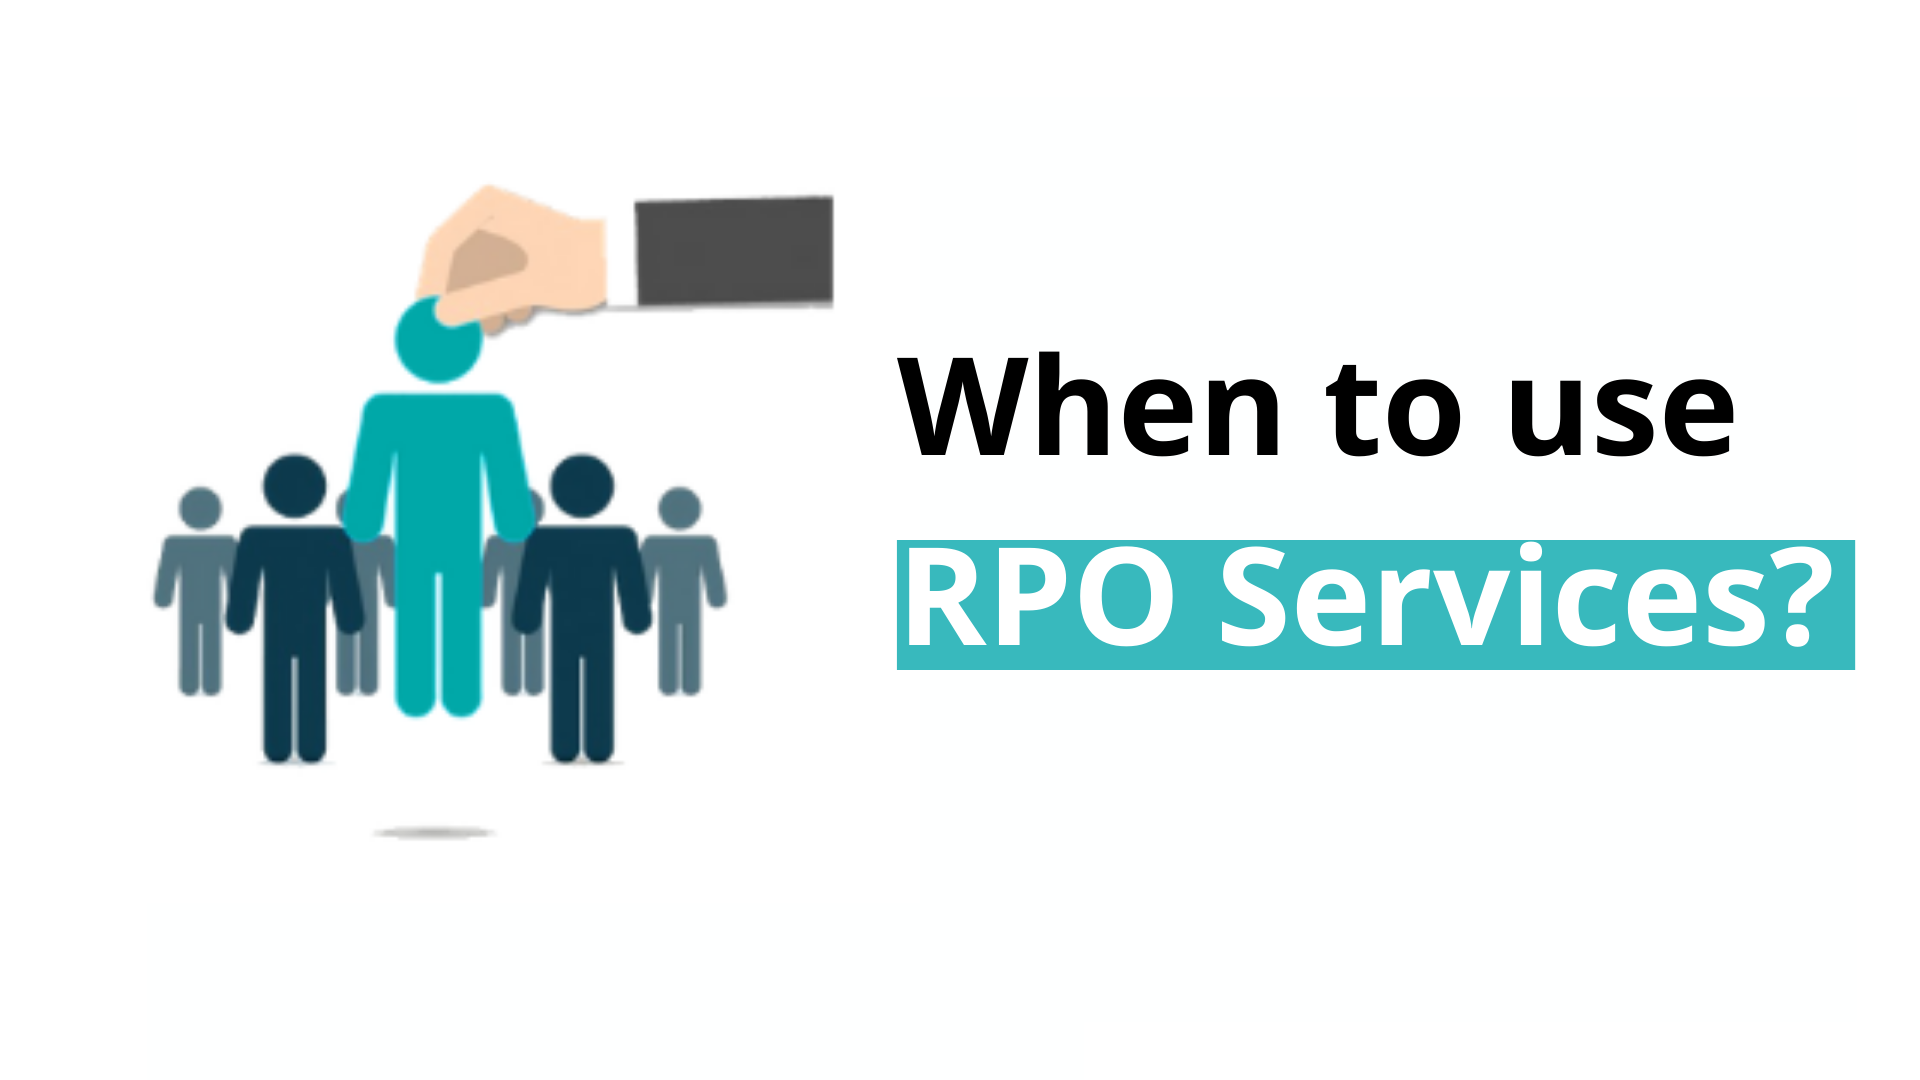 When to use RPO services?